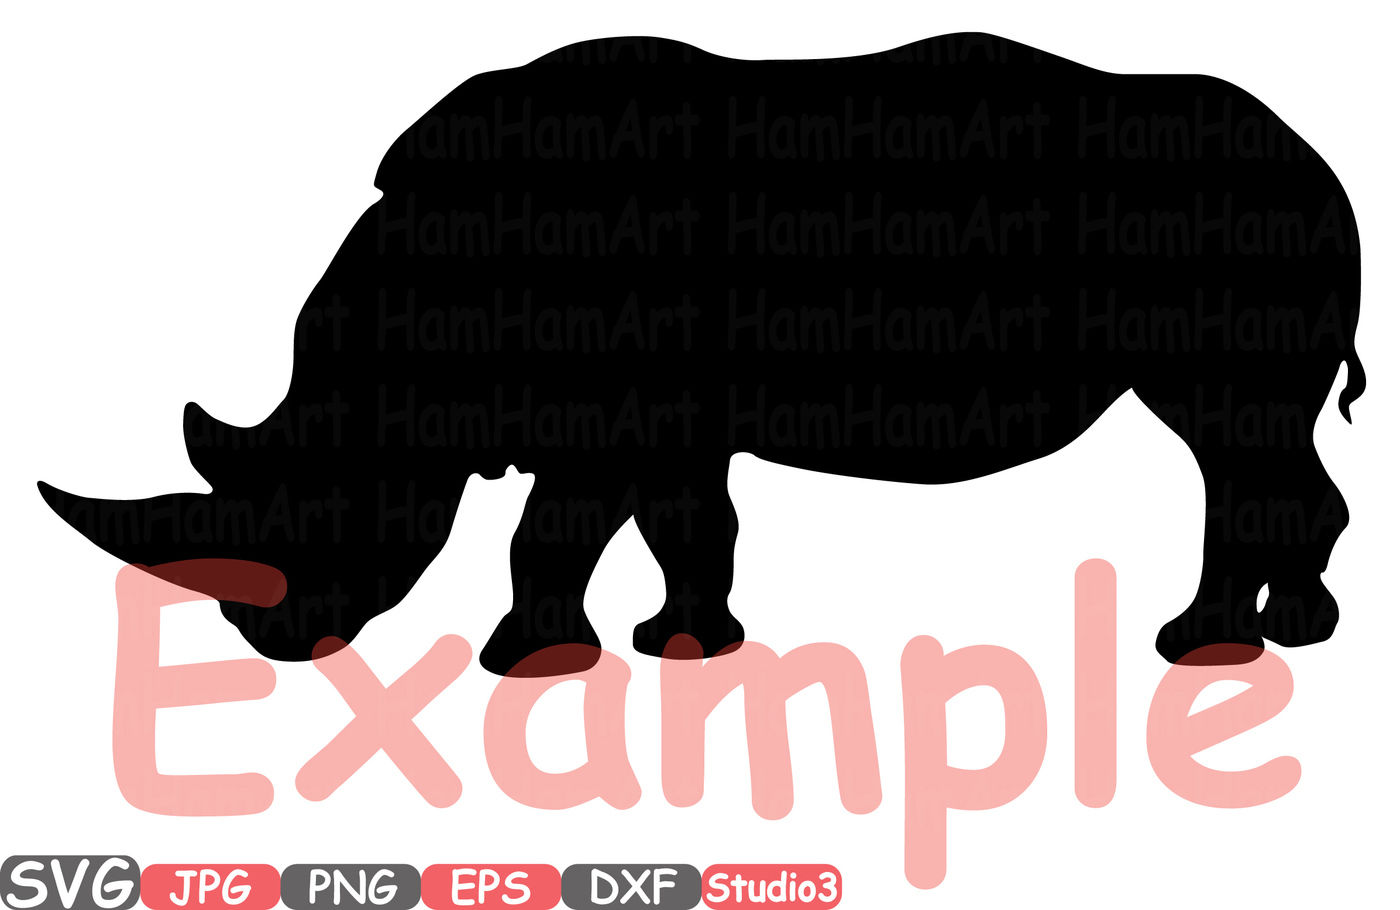 hight resolution of  art graphic studio3 cricut cuttable die cut machines school clipart party illustration set digital eps png dxf jpg clip art vector lion elephant rhino